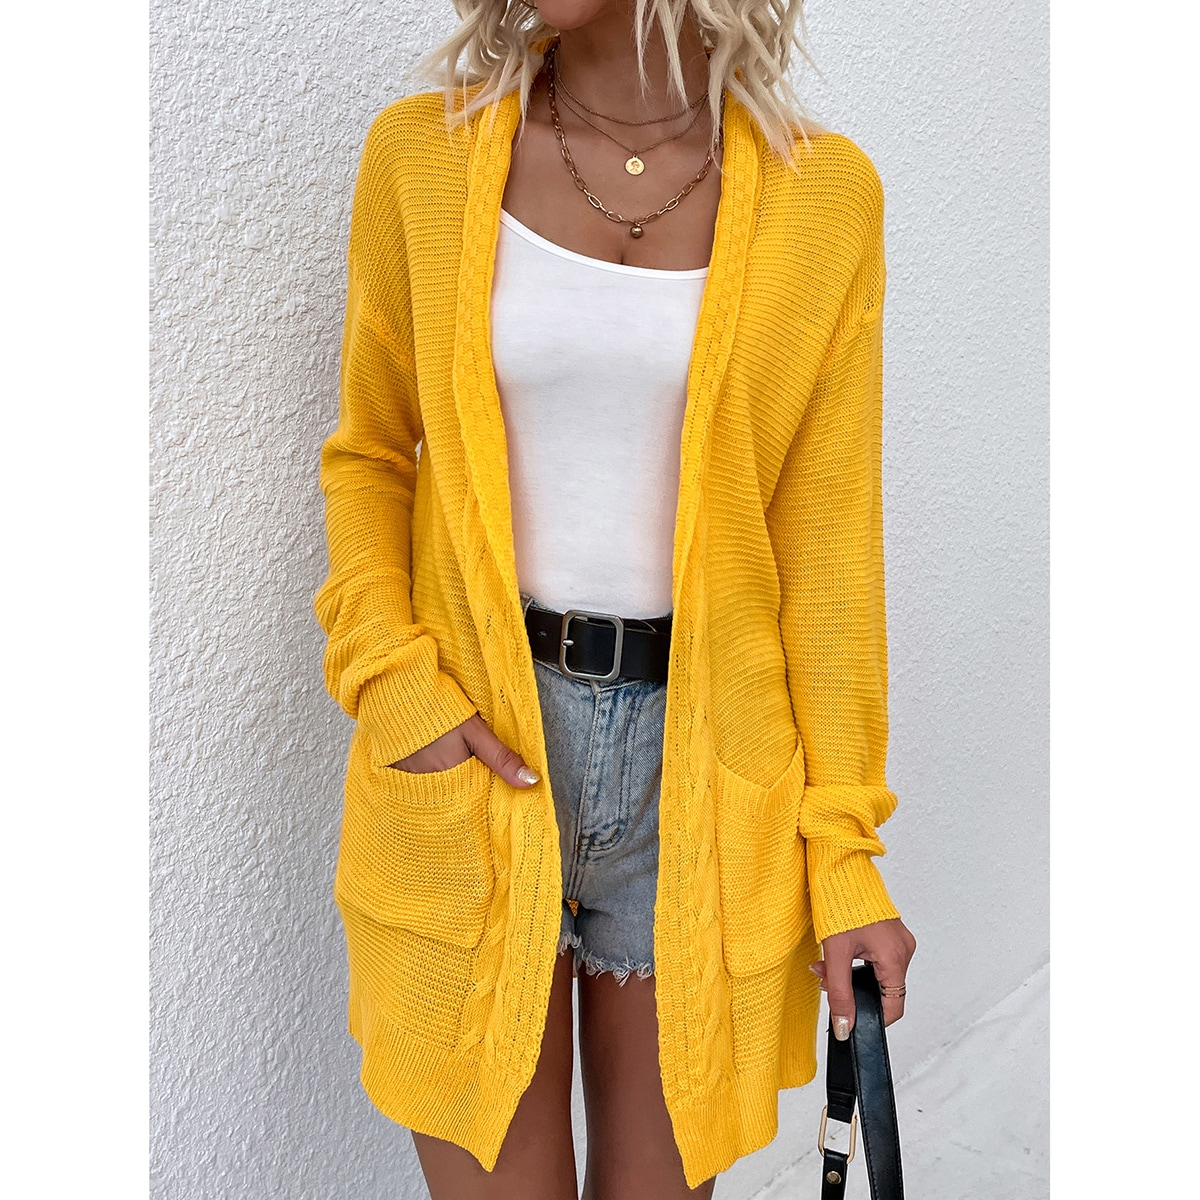 Shawl Collar Dual Pocket Drop Shoulder Open Front Cardigan, SHEIN  - buy with discount